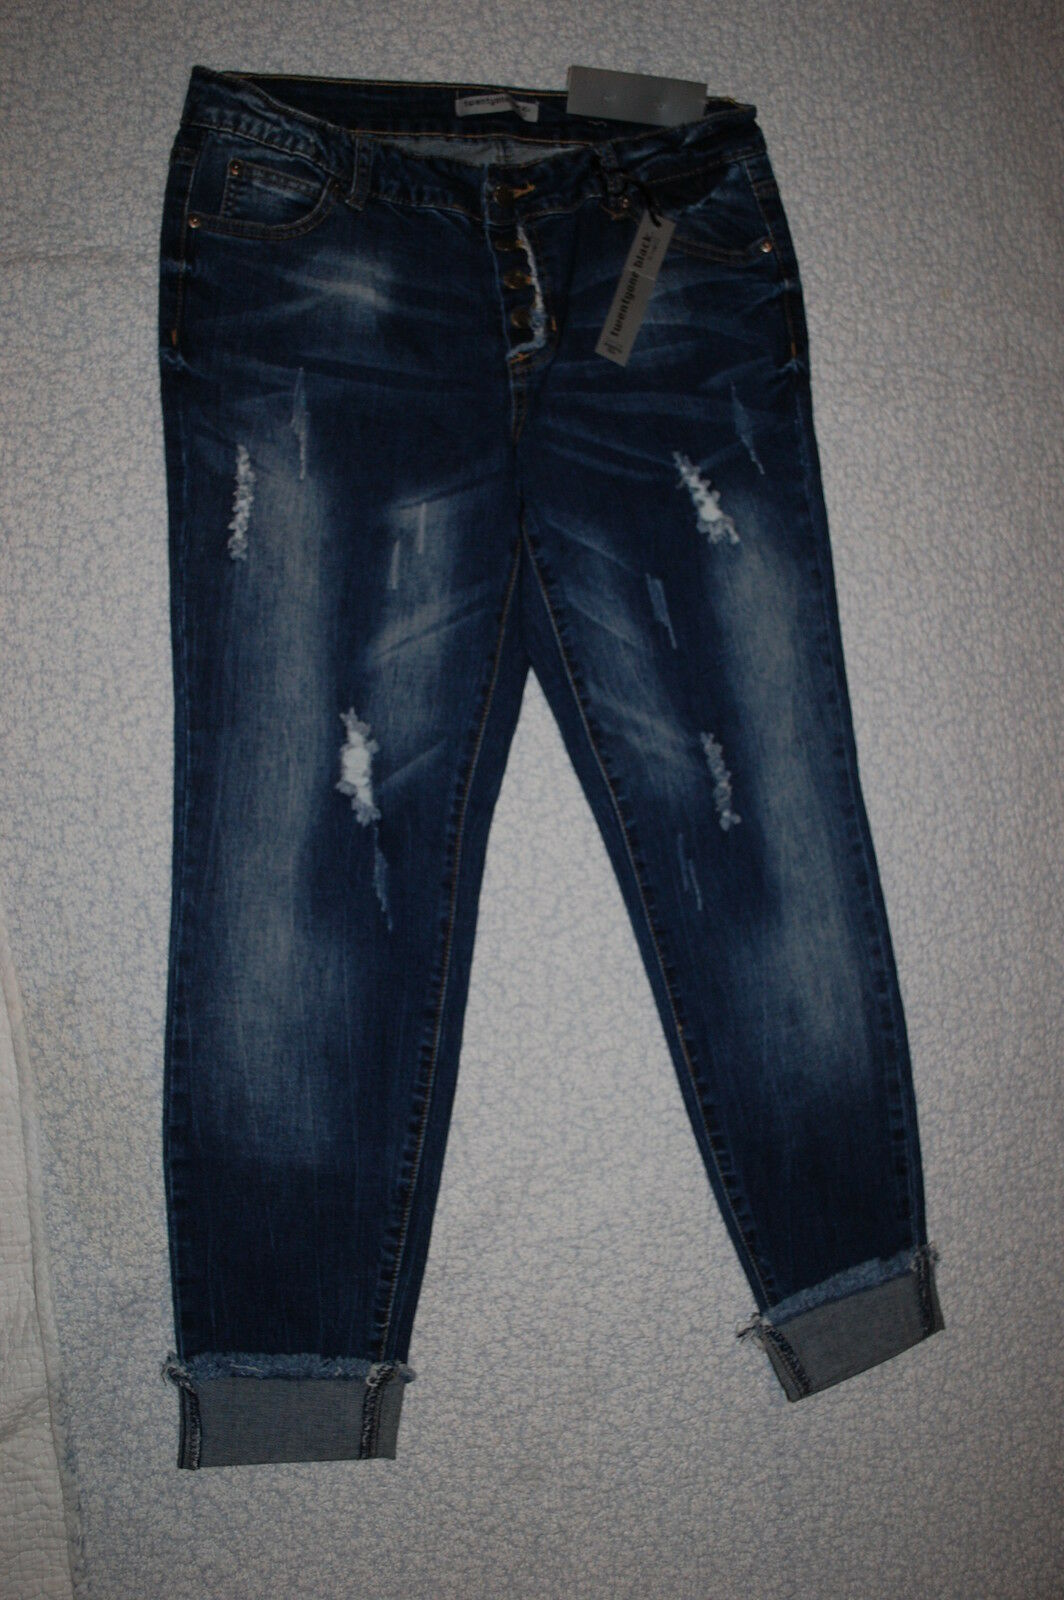 Jr Womens DK blueE SKINNY JEANS Low Rise BUTTON FLY Raw Hem DISTRESSED Hege 13-14